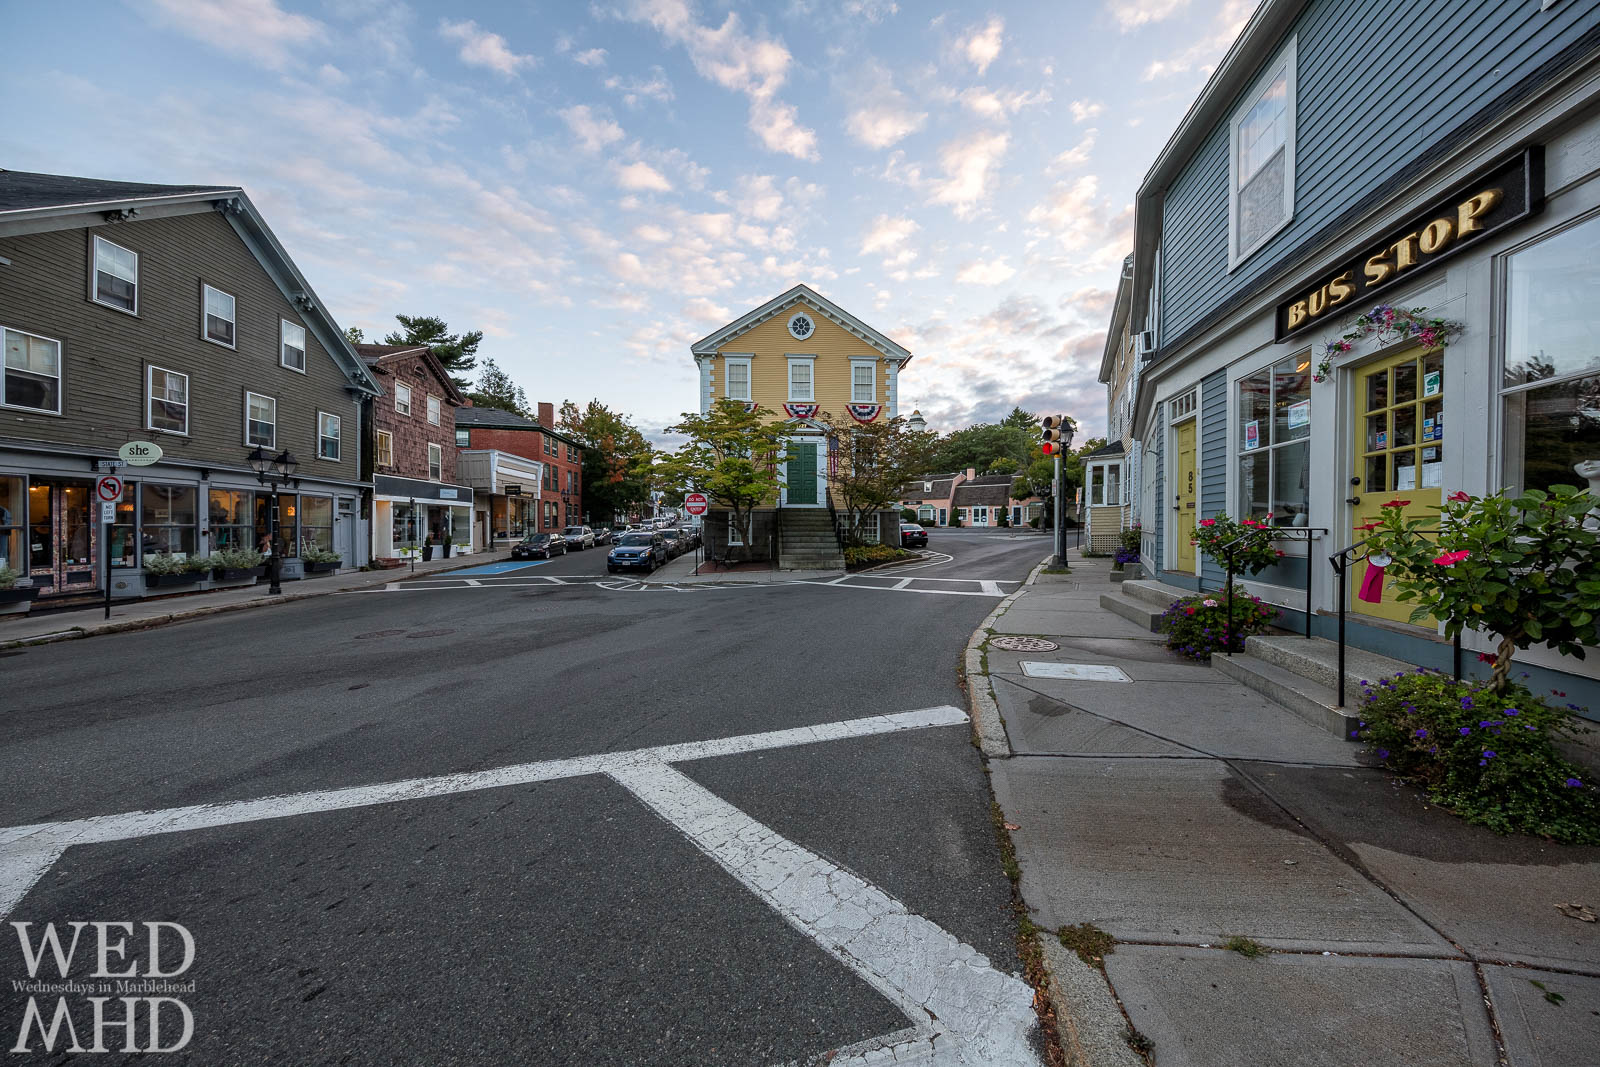 An ultra wide angle view of historic downtown Marblehead features Old Town House, She and The Bus Stop